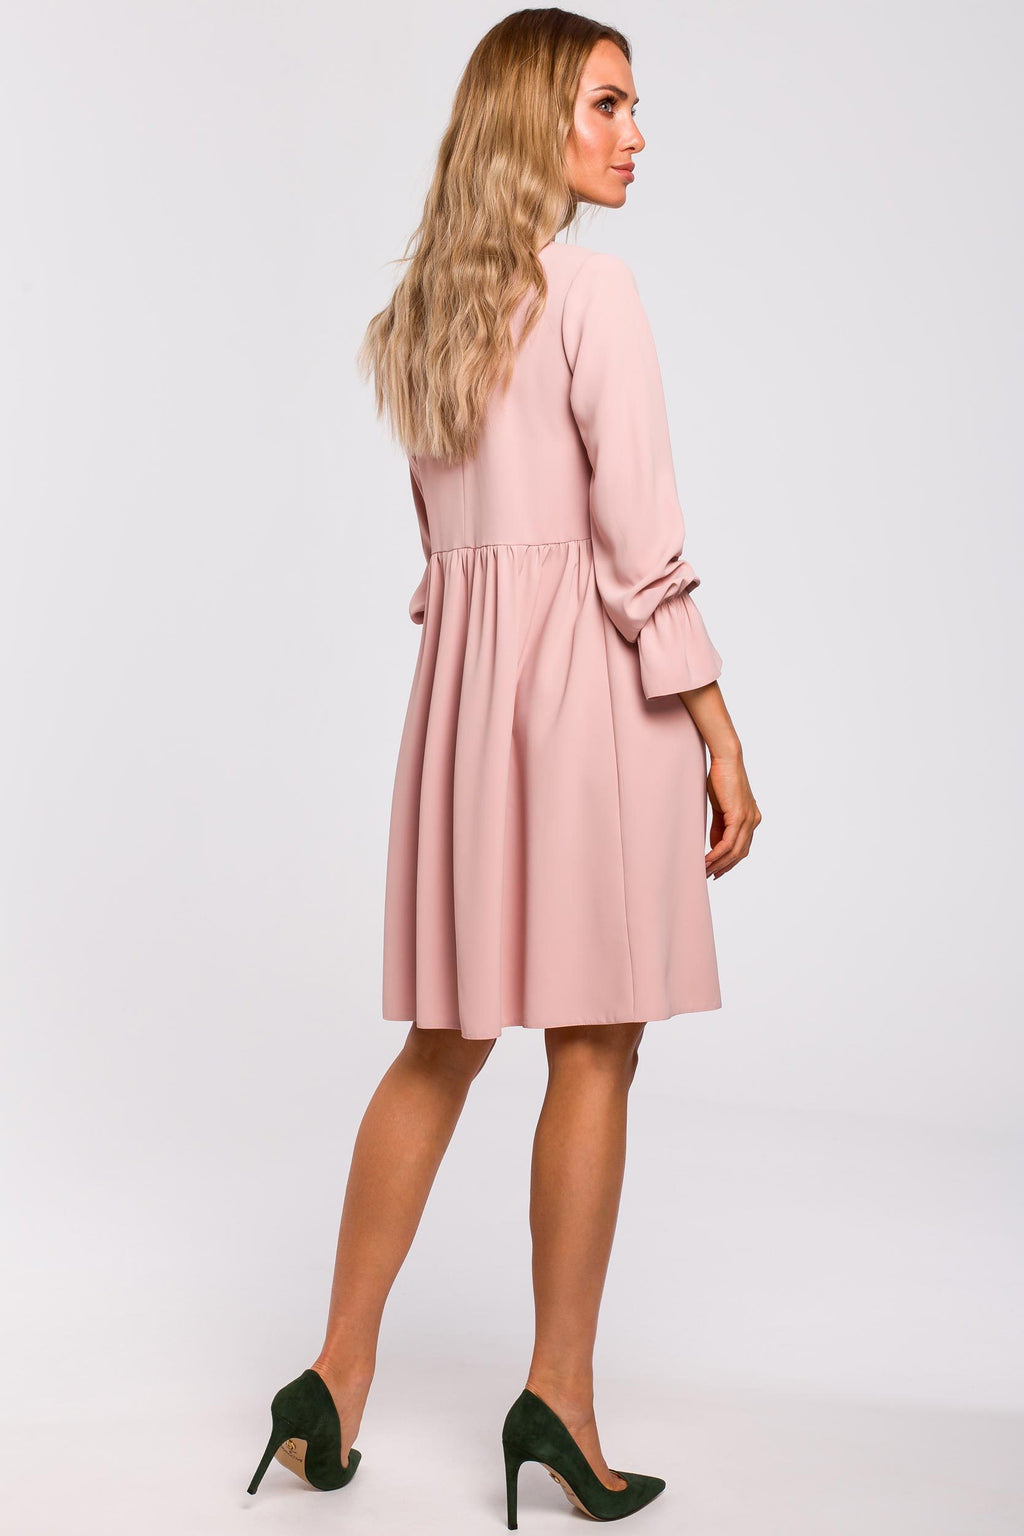 Powder Pink Loose Dress With Tied Bell Sleeves - So Chic Boutique